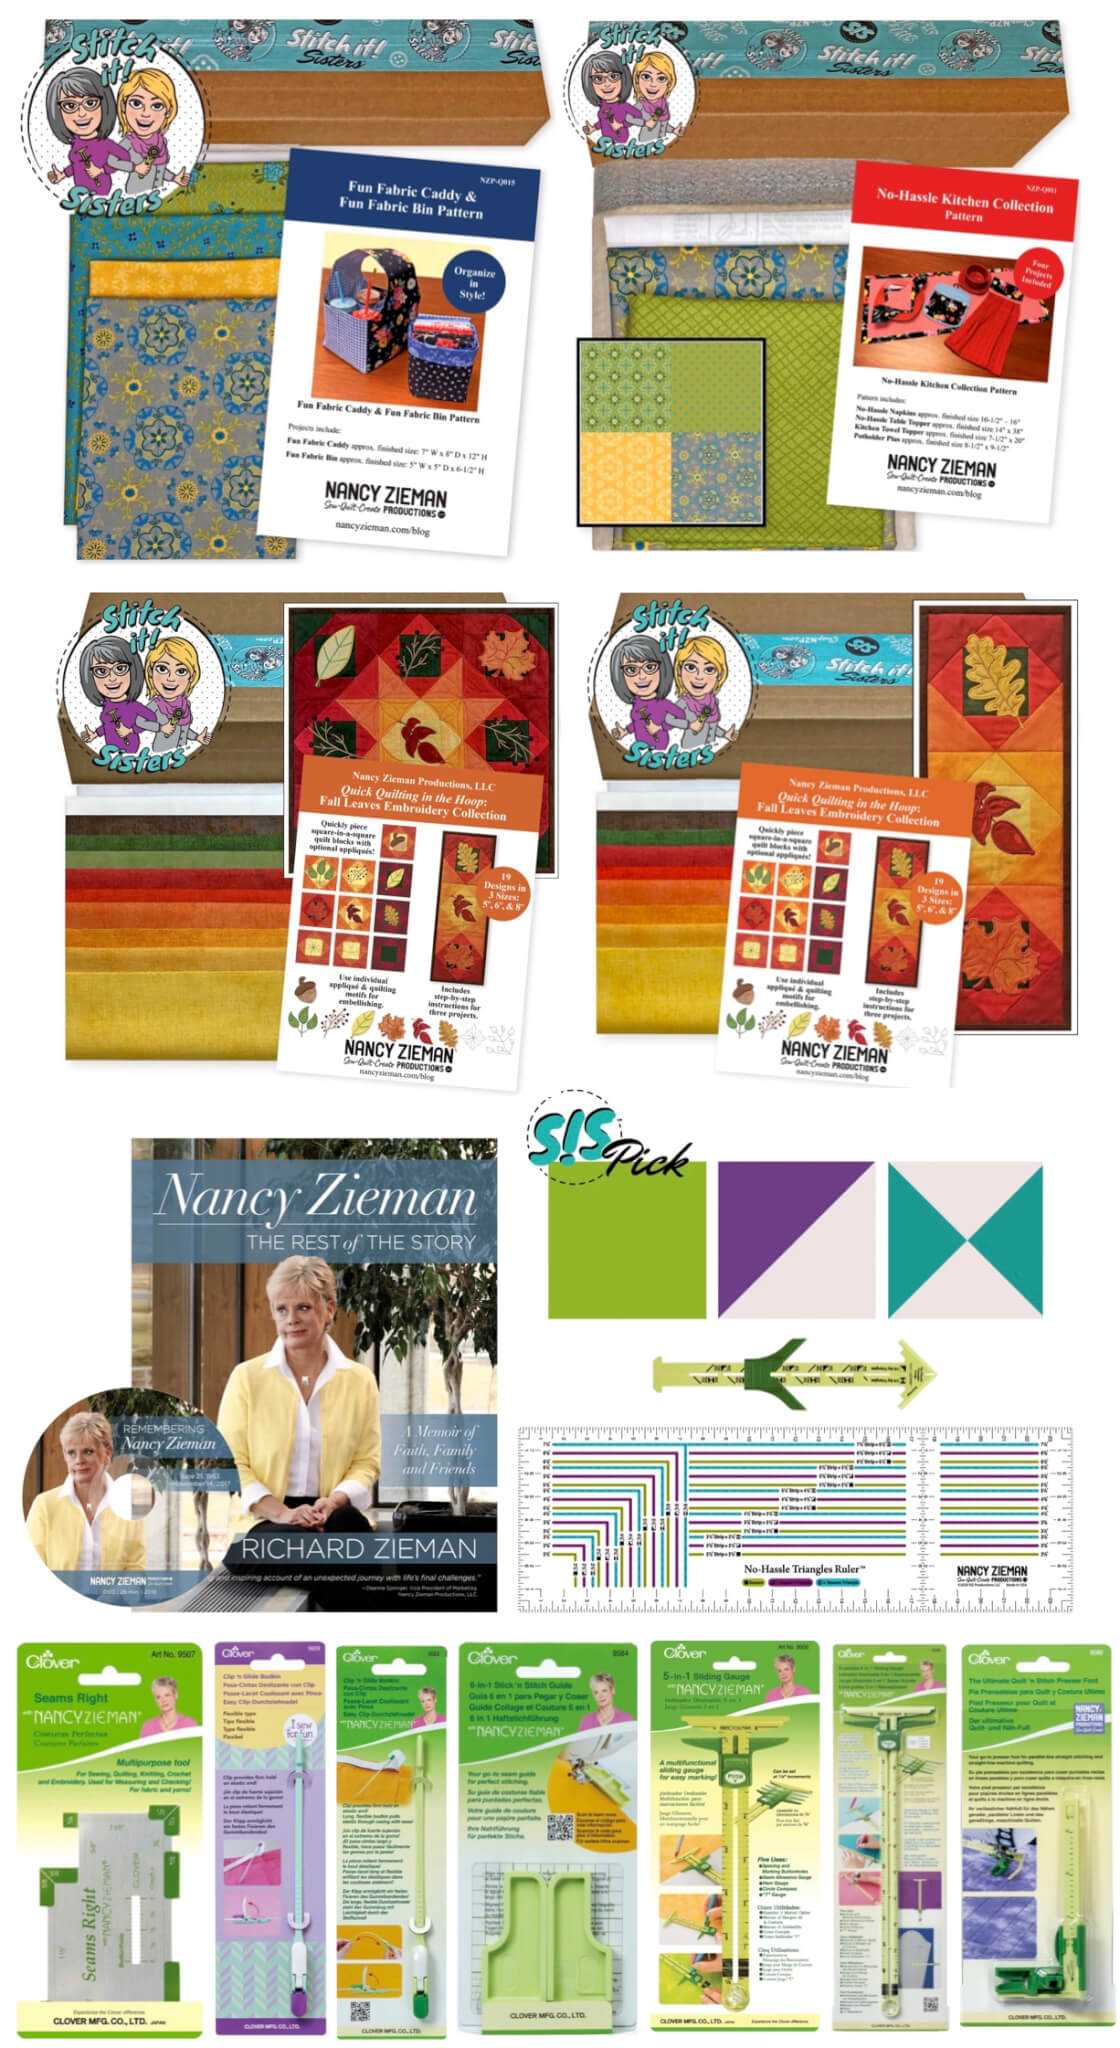 Find Nancy Zieman ProductionsTop 10 Sewing Tools, Patterns, Bundle Boxes, and more (above)atNancy Zieman Productions at ShopNZP.com!